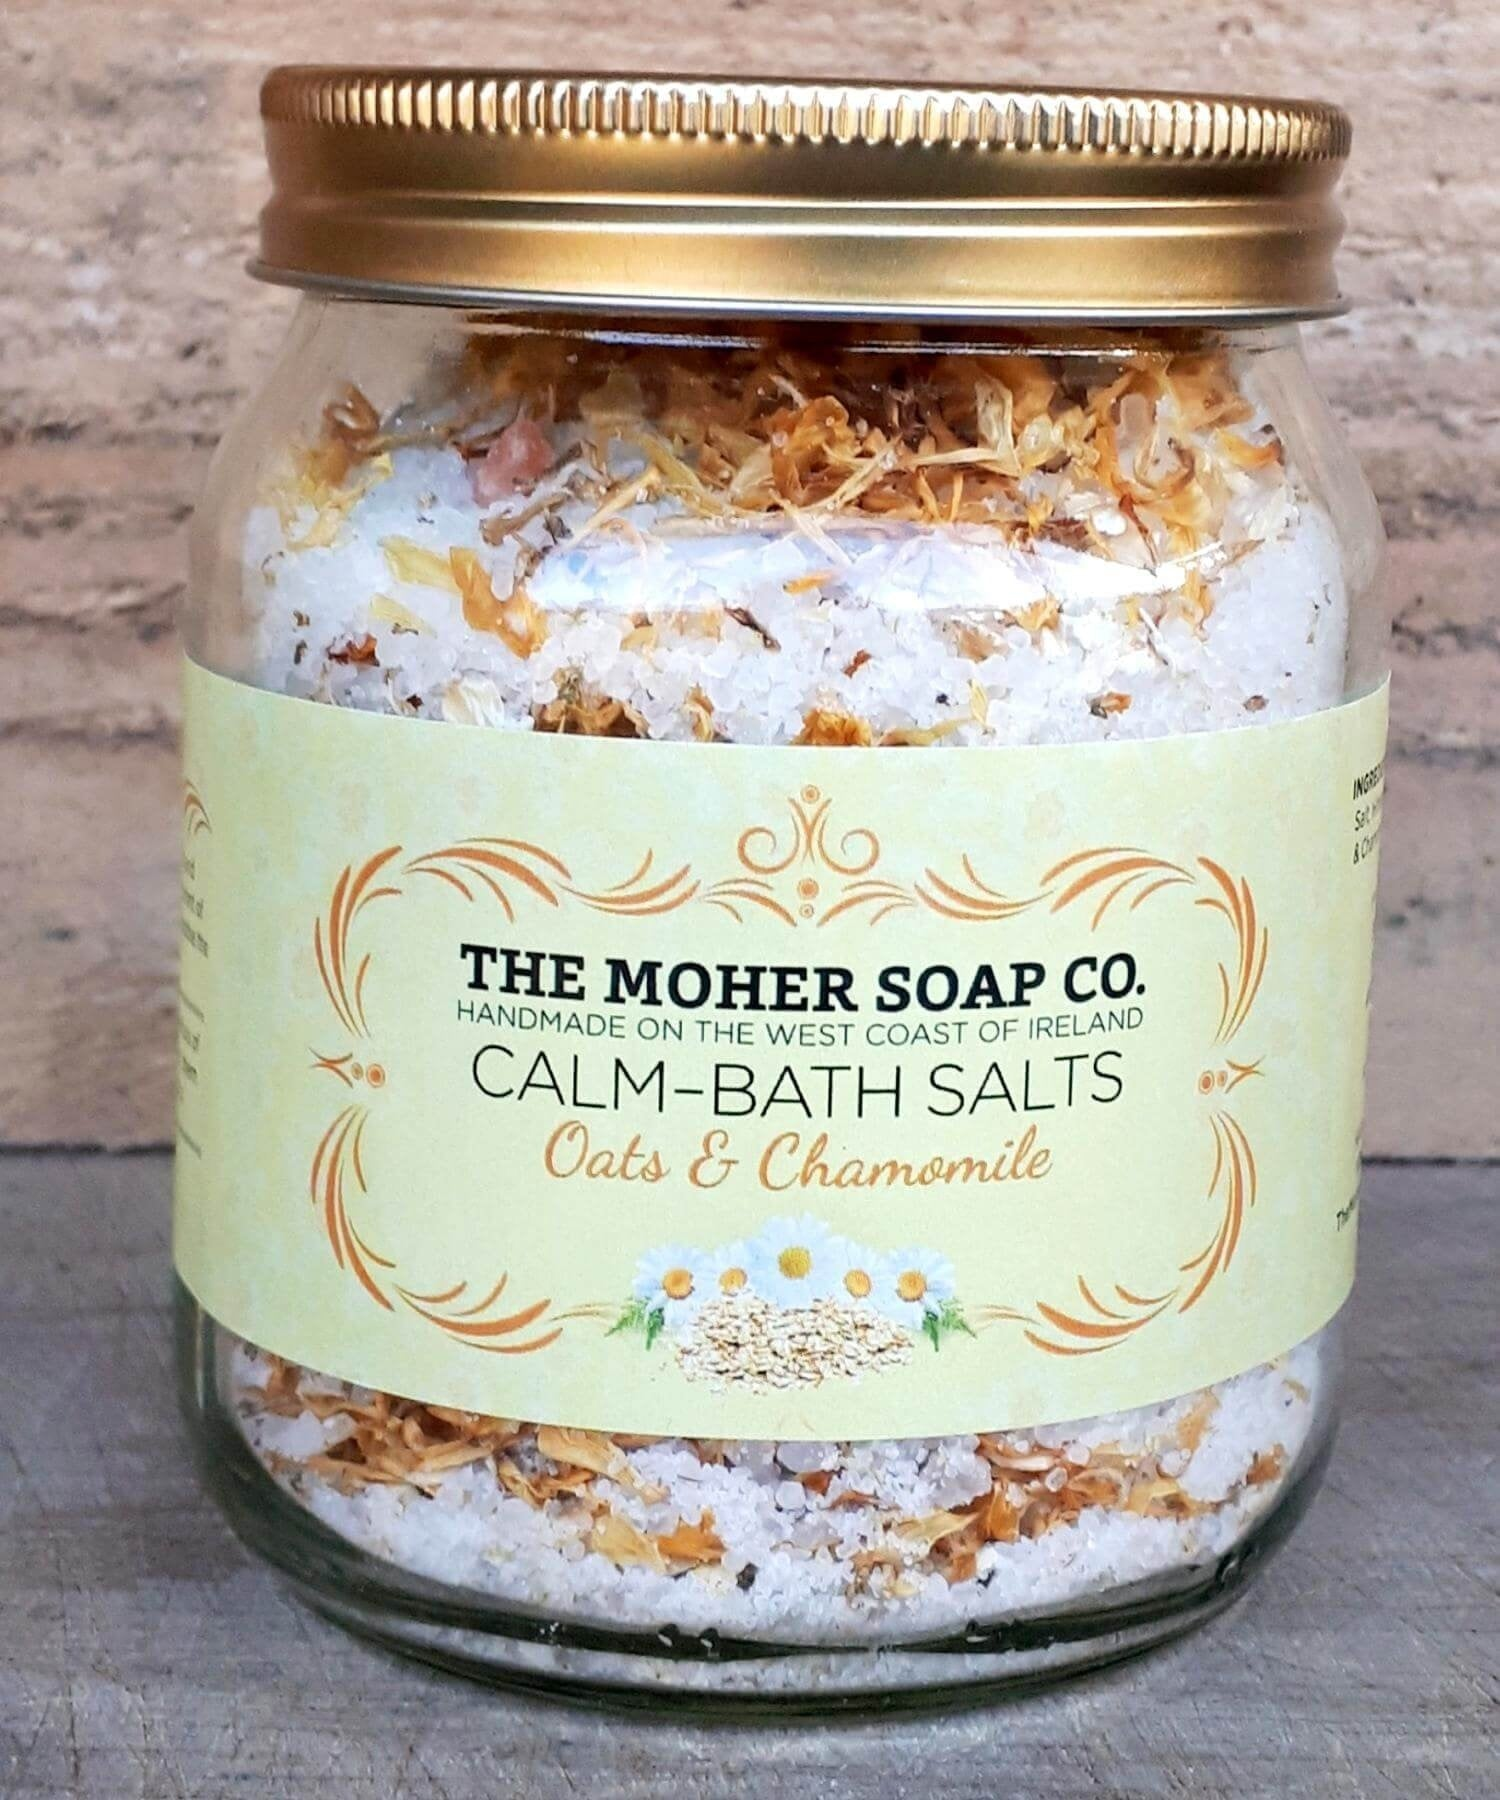 Bath Salts - Oats & Chamomile - [The Moher Soap Co.] - Skincare & Beauty - Irish Gifts